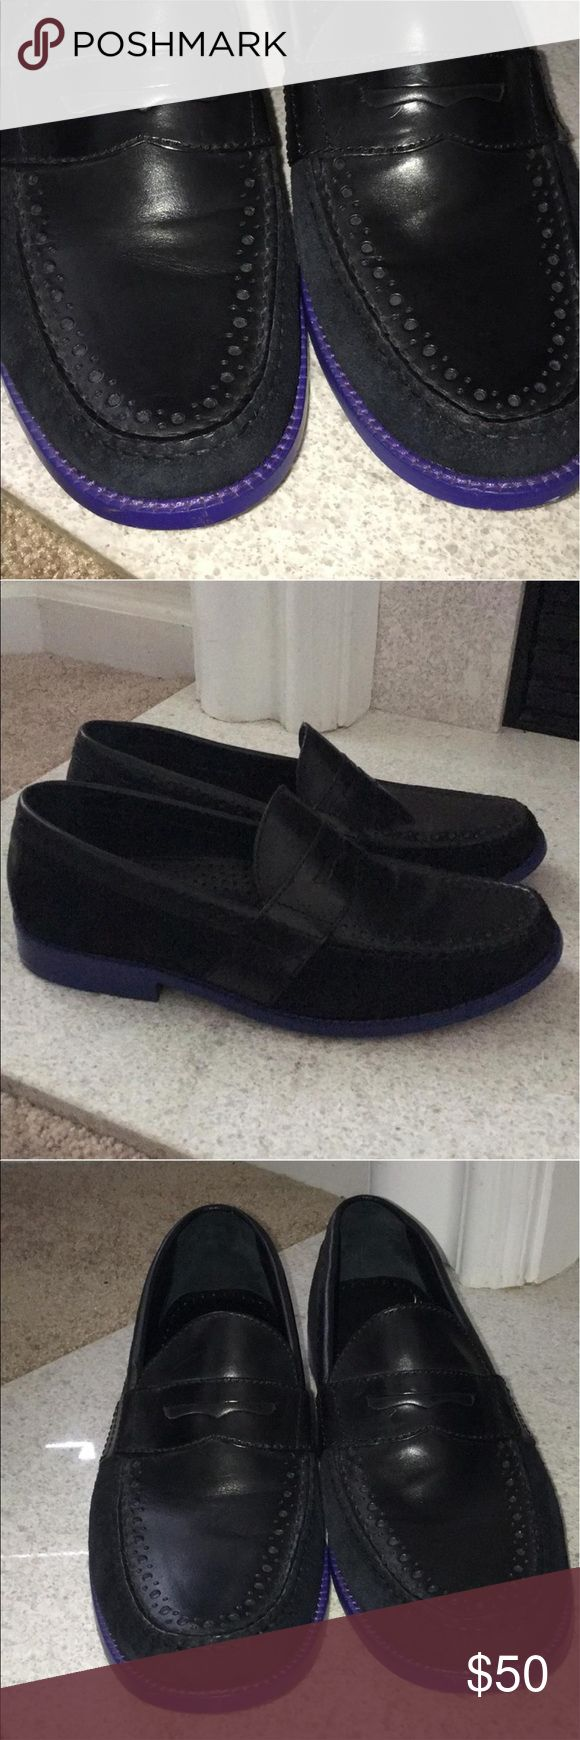 Cole Haan Loafers Preowned Cole Haan Loafer; great condition. Black leather with black suede trim & royal blue sole Cole Haan Shoes Loafers & Slip-Ons